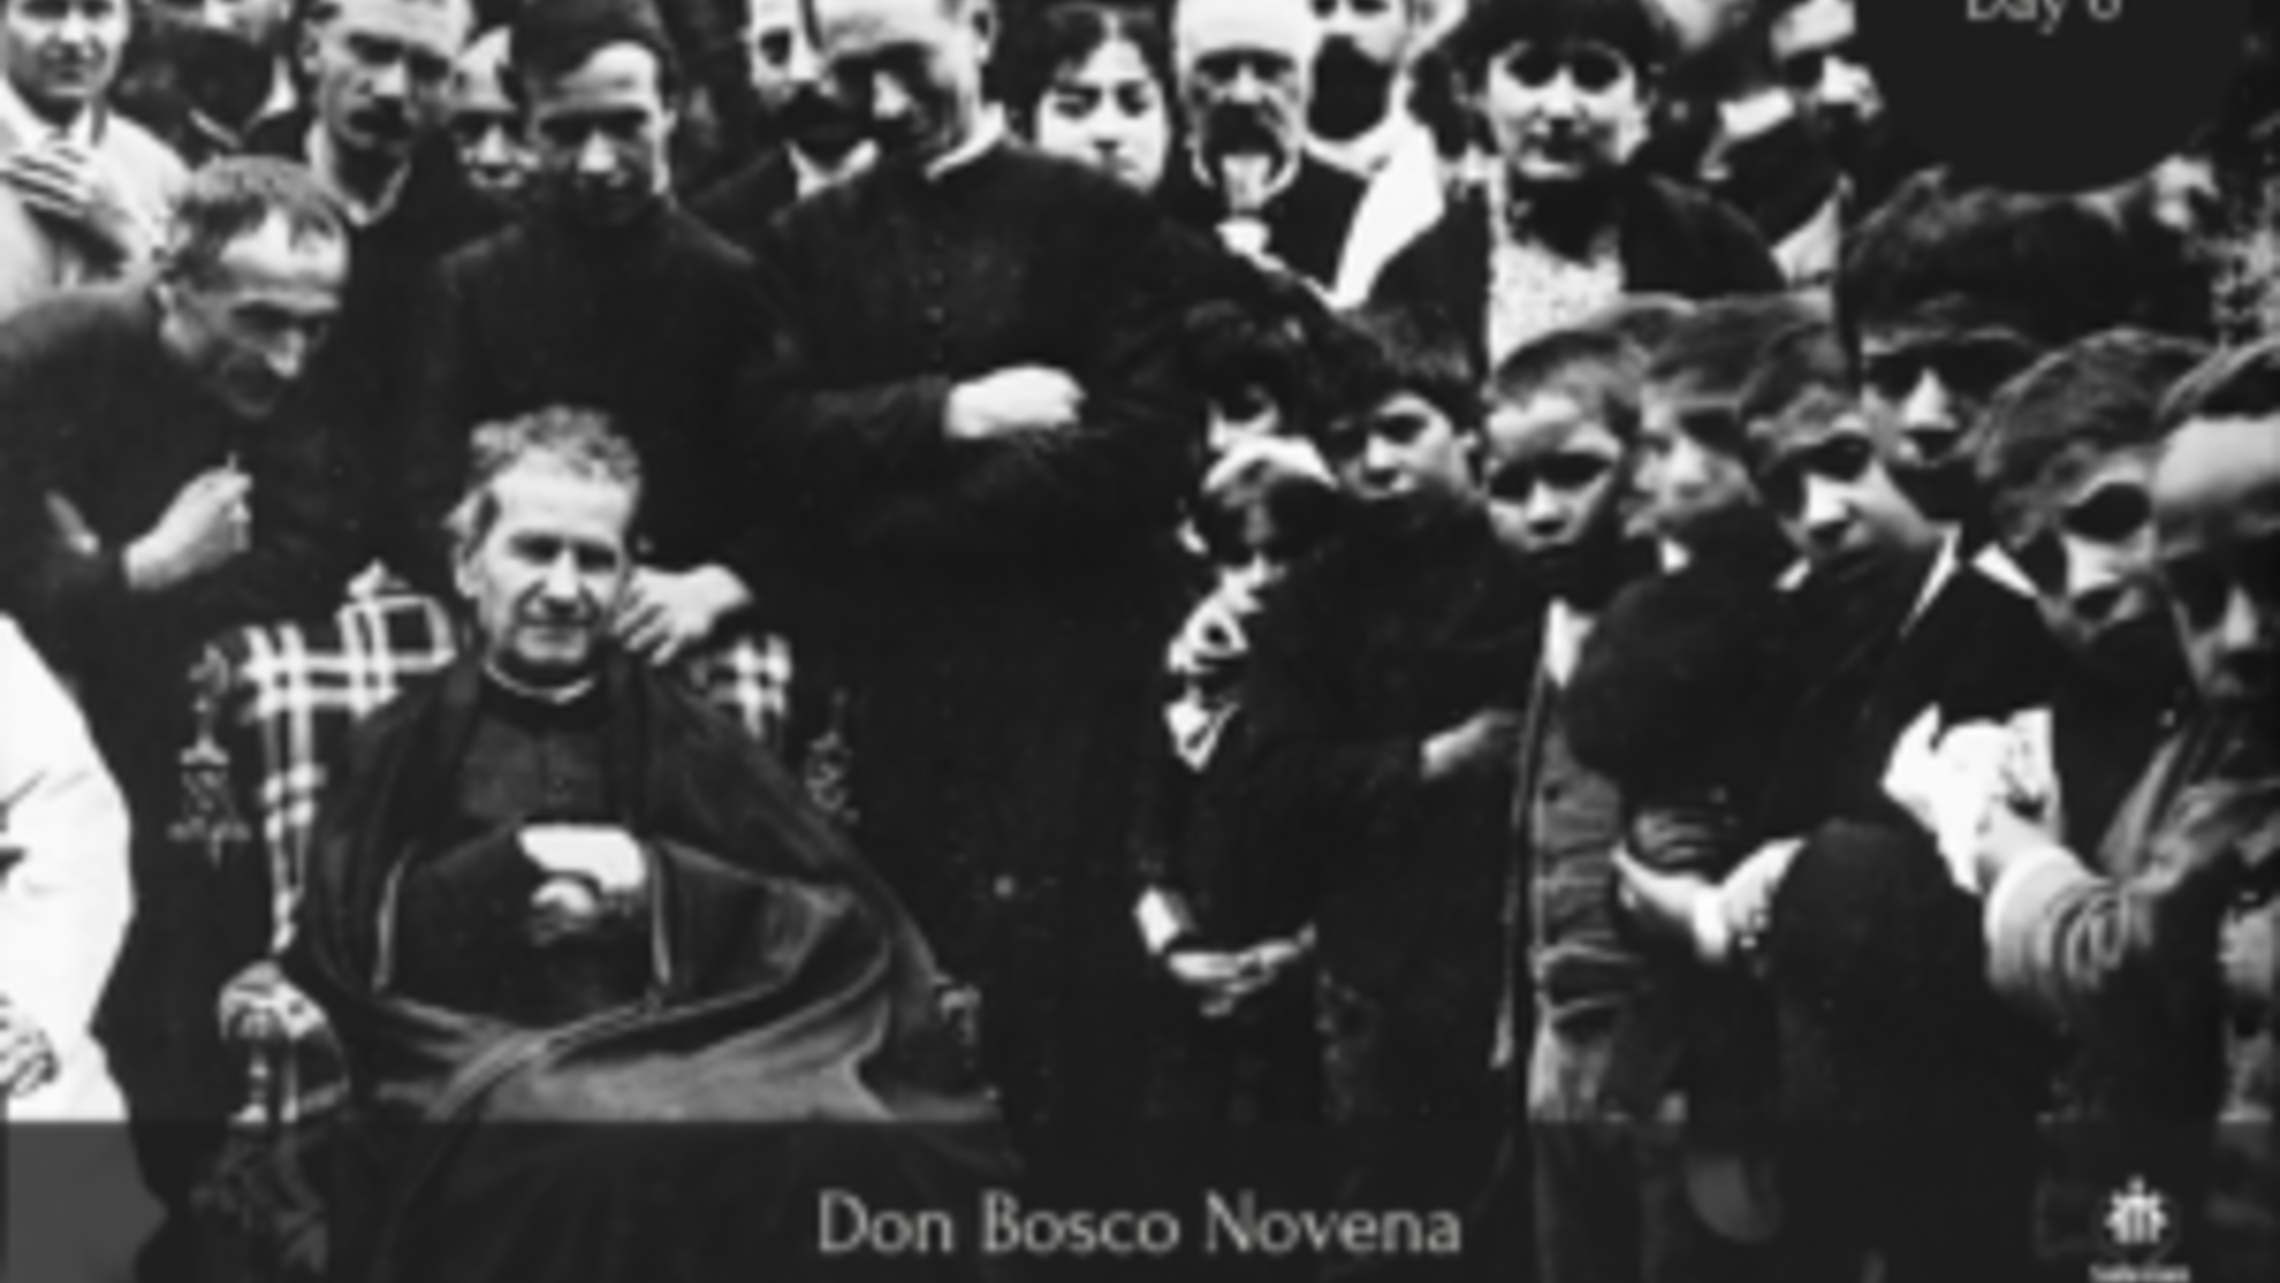 Old Don Bosco